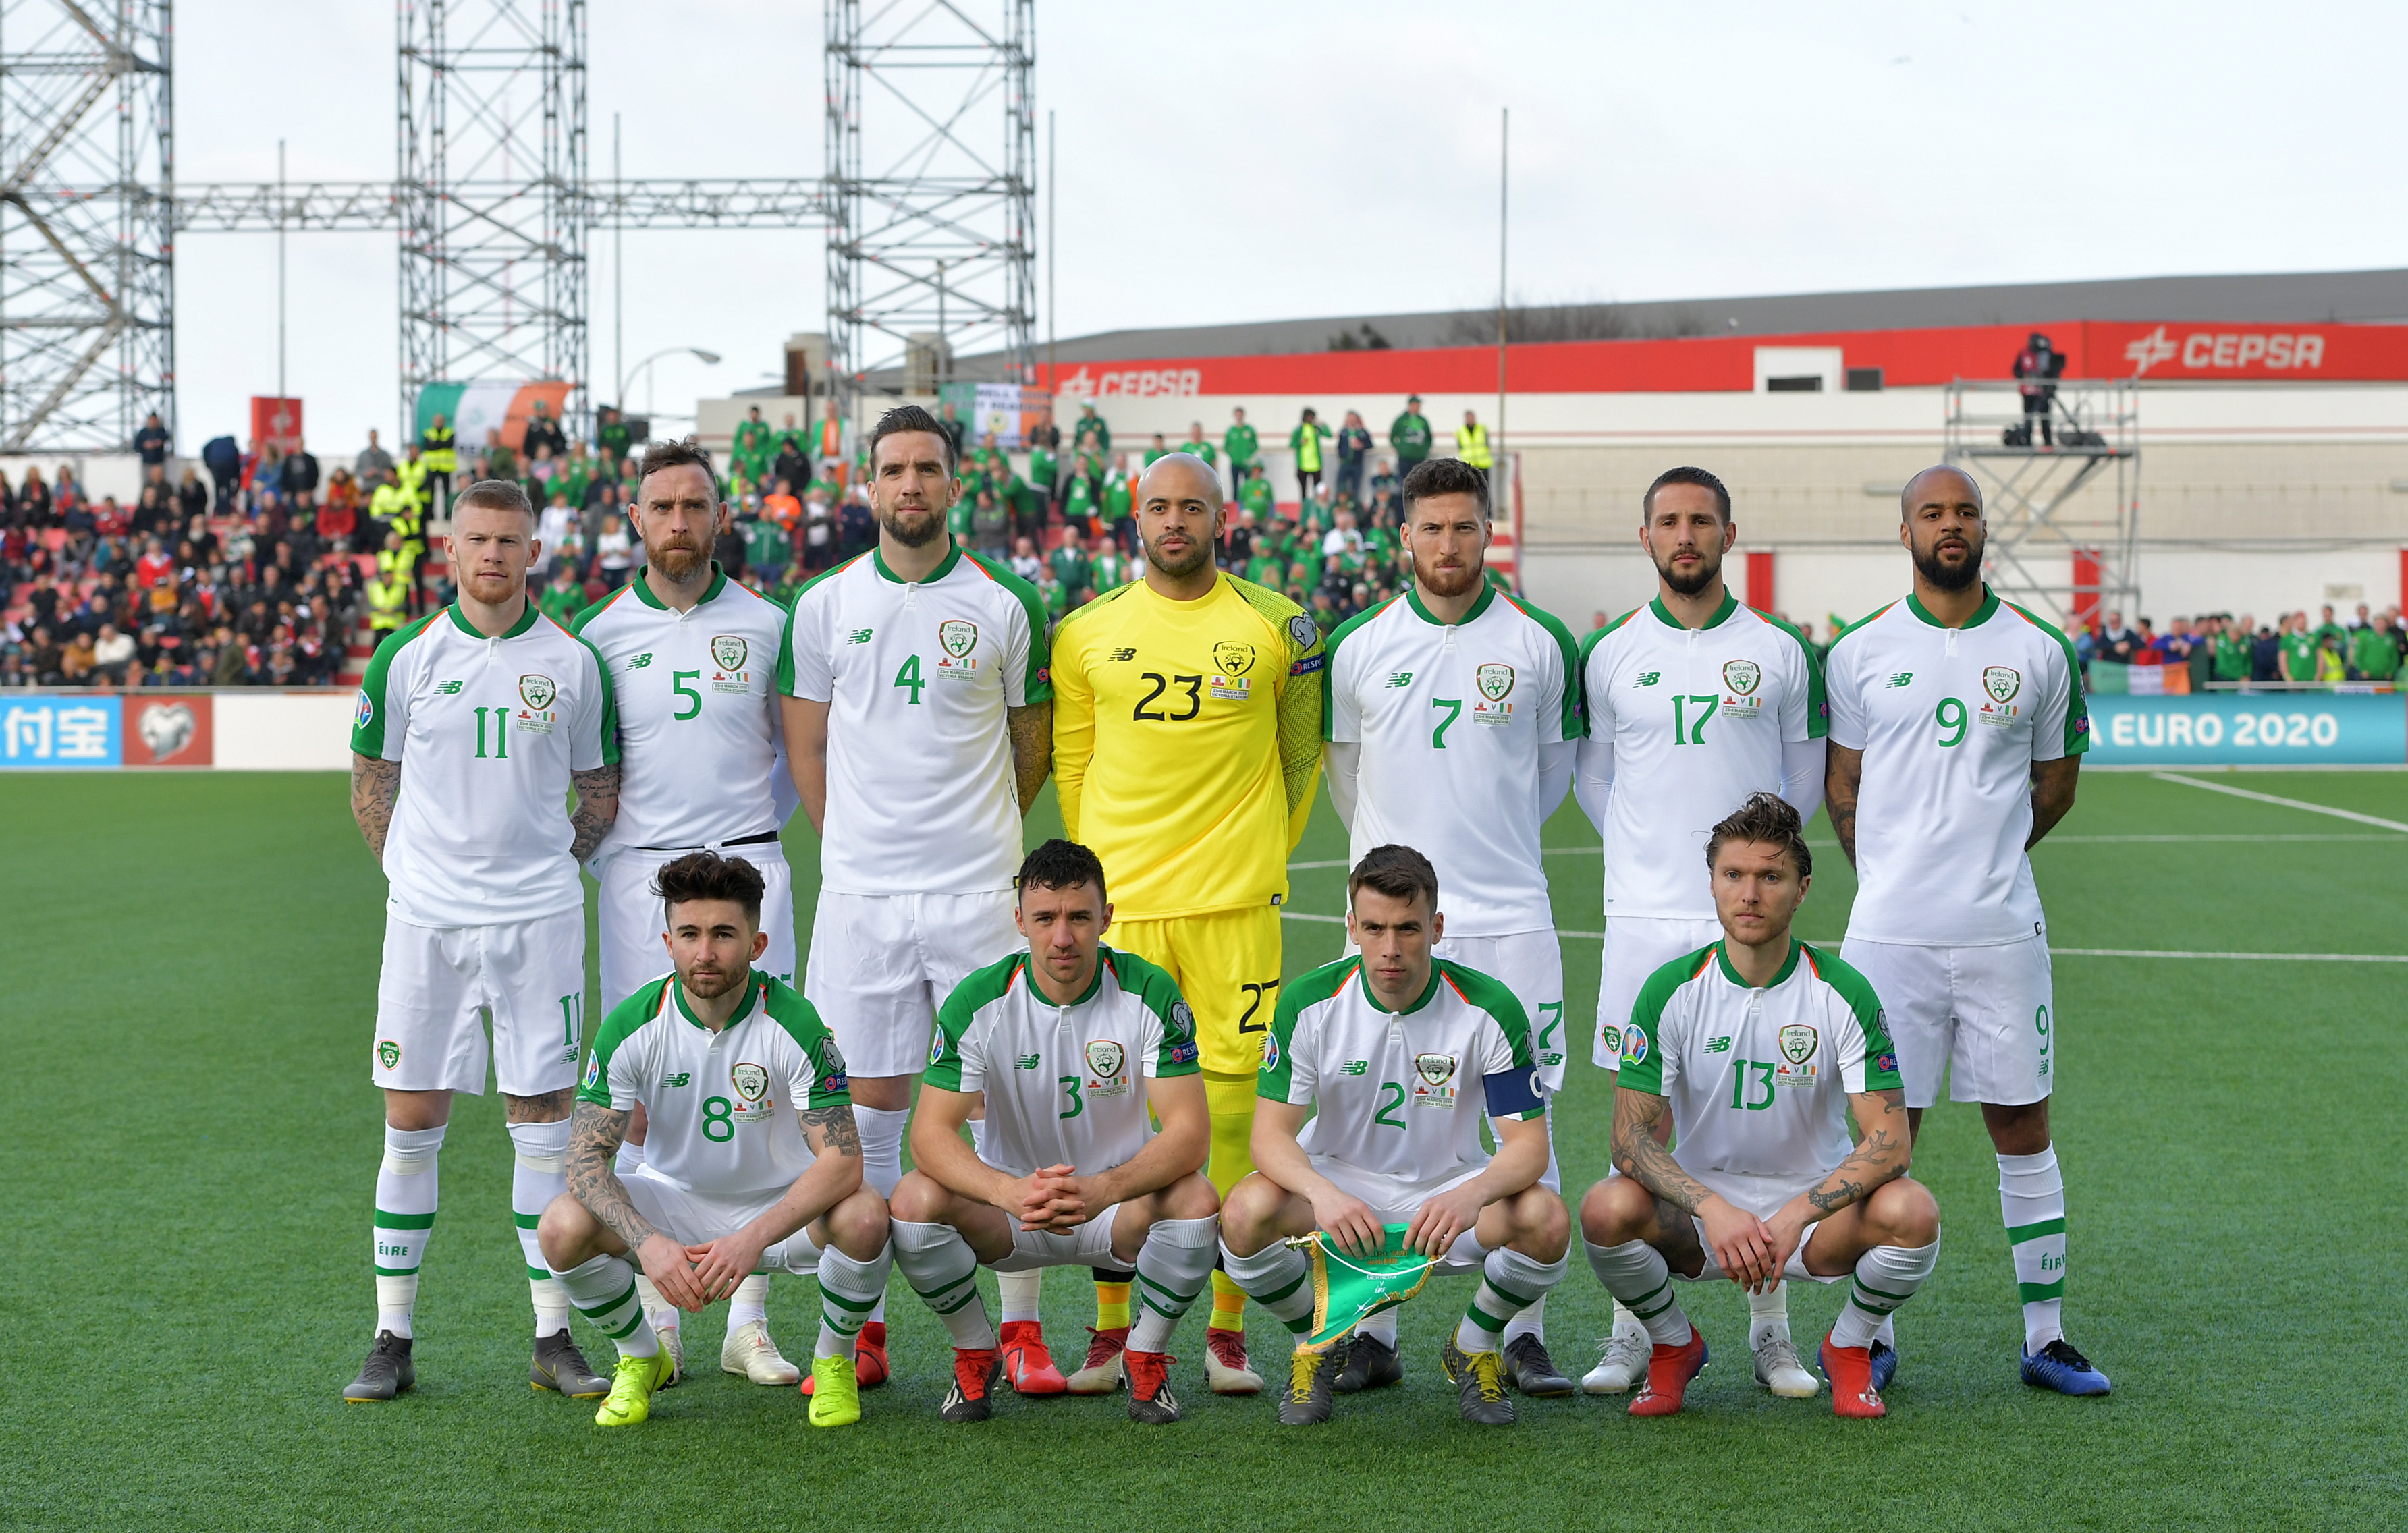 The Republic of Ireland team group